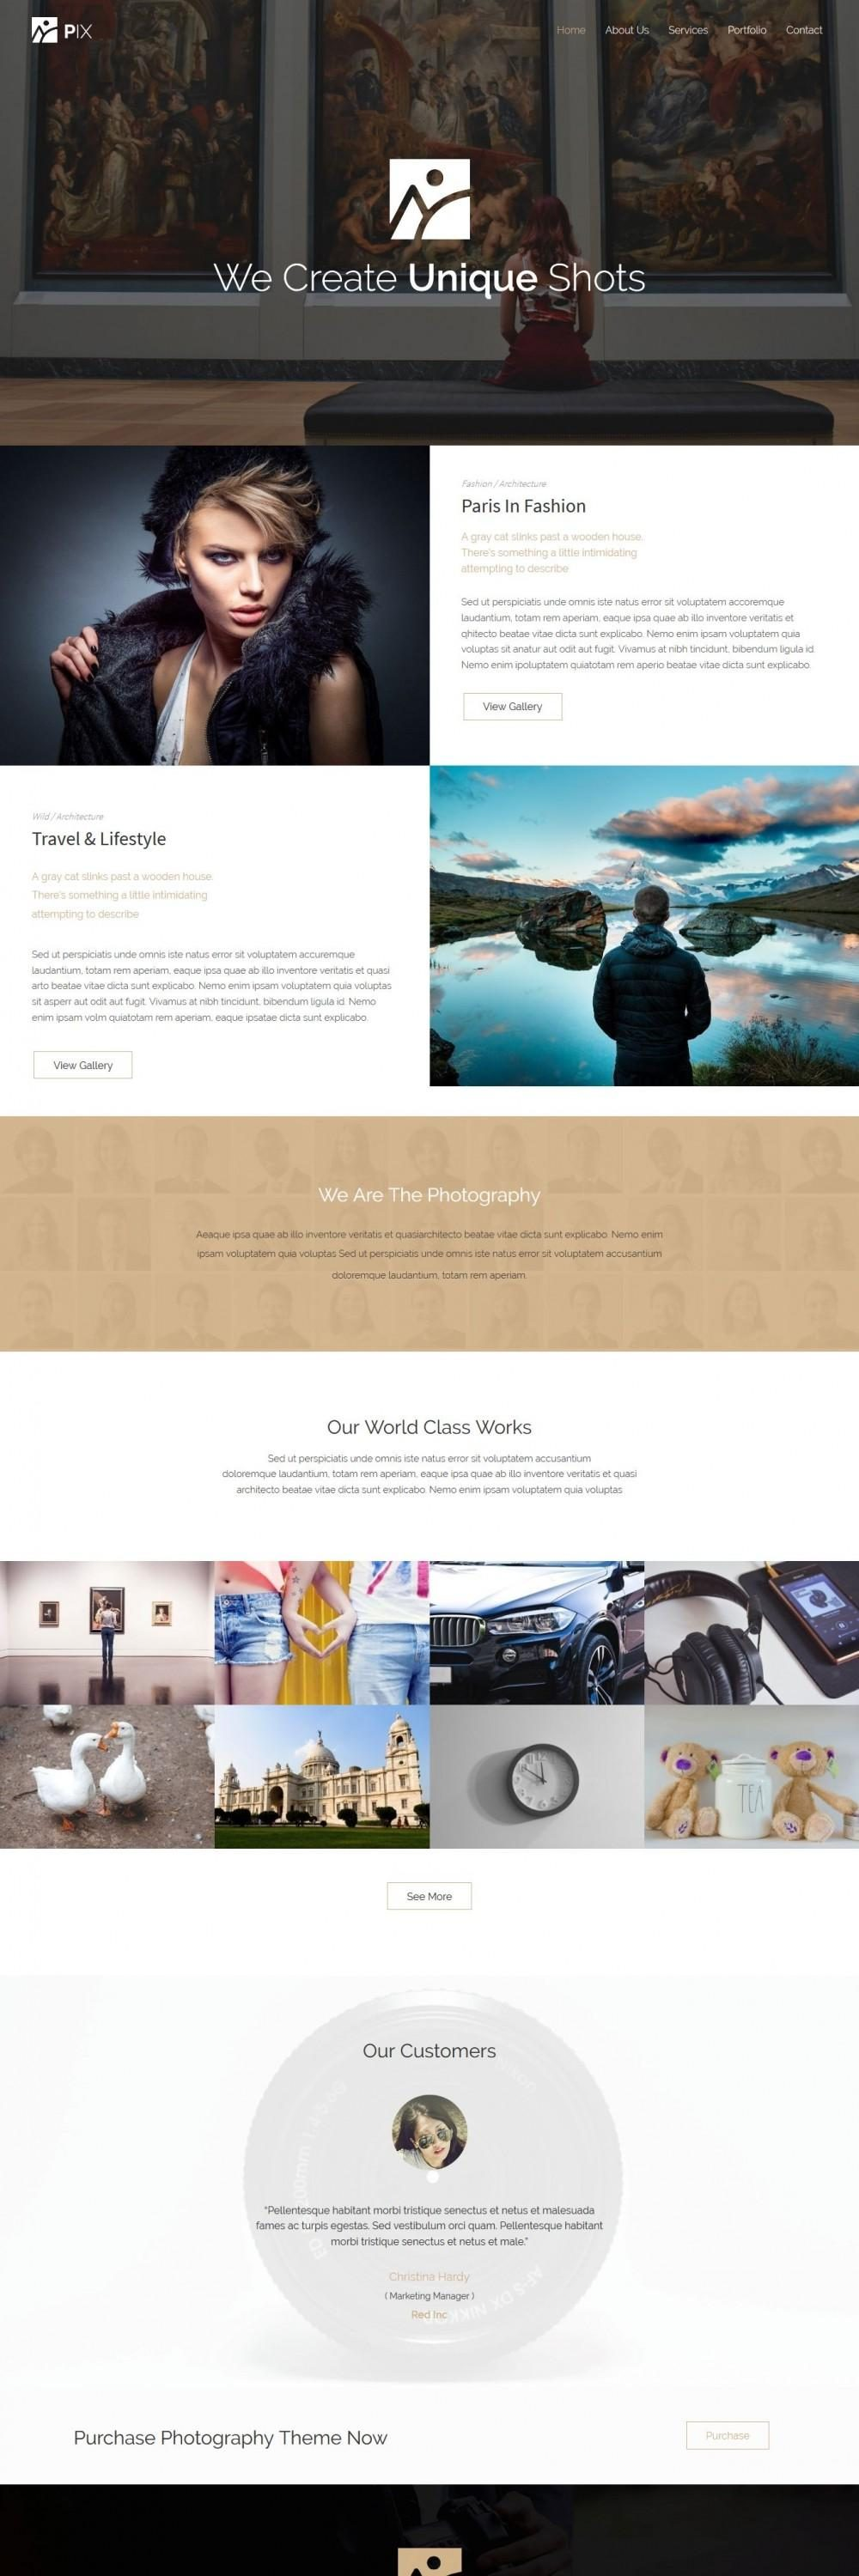 Pix - Photography Studio Joomla Template